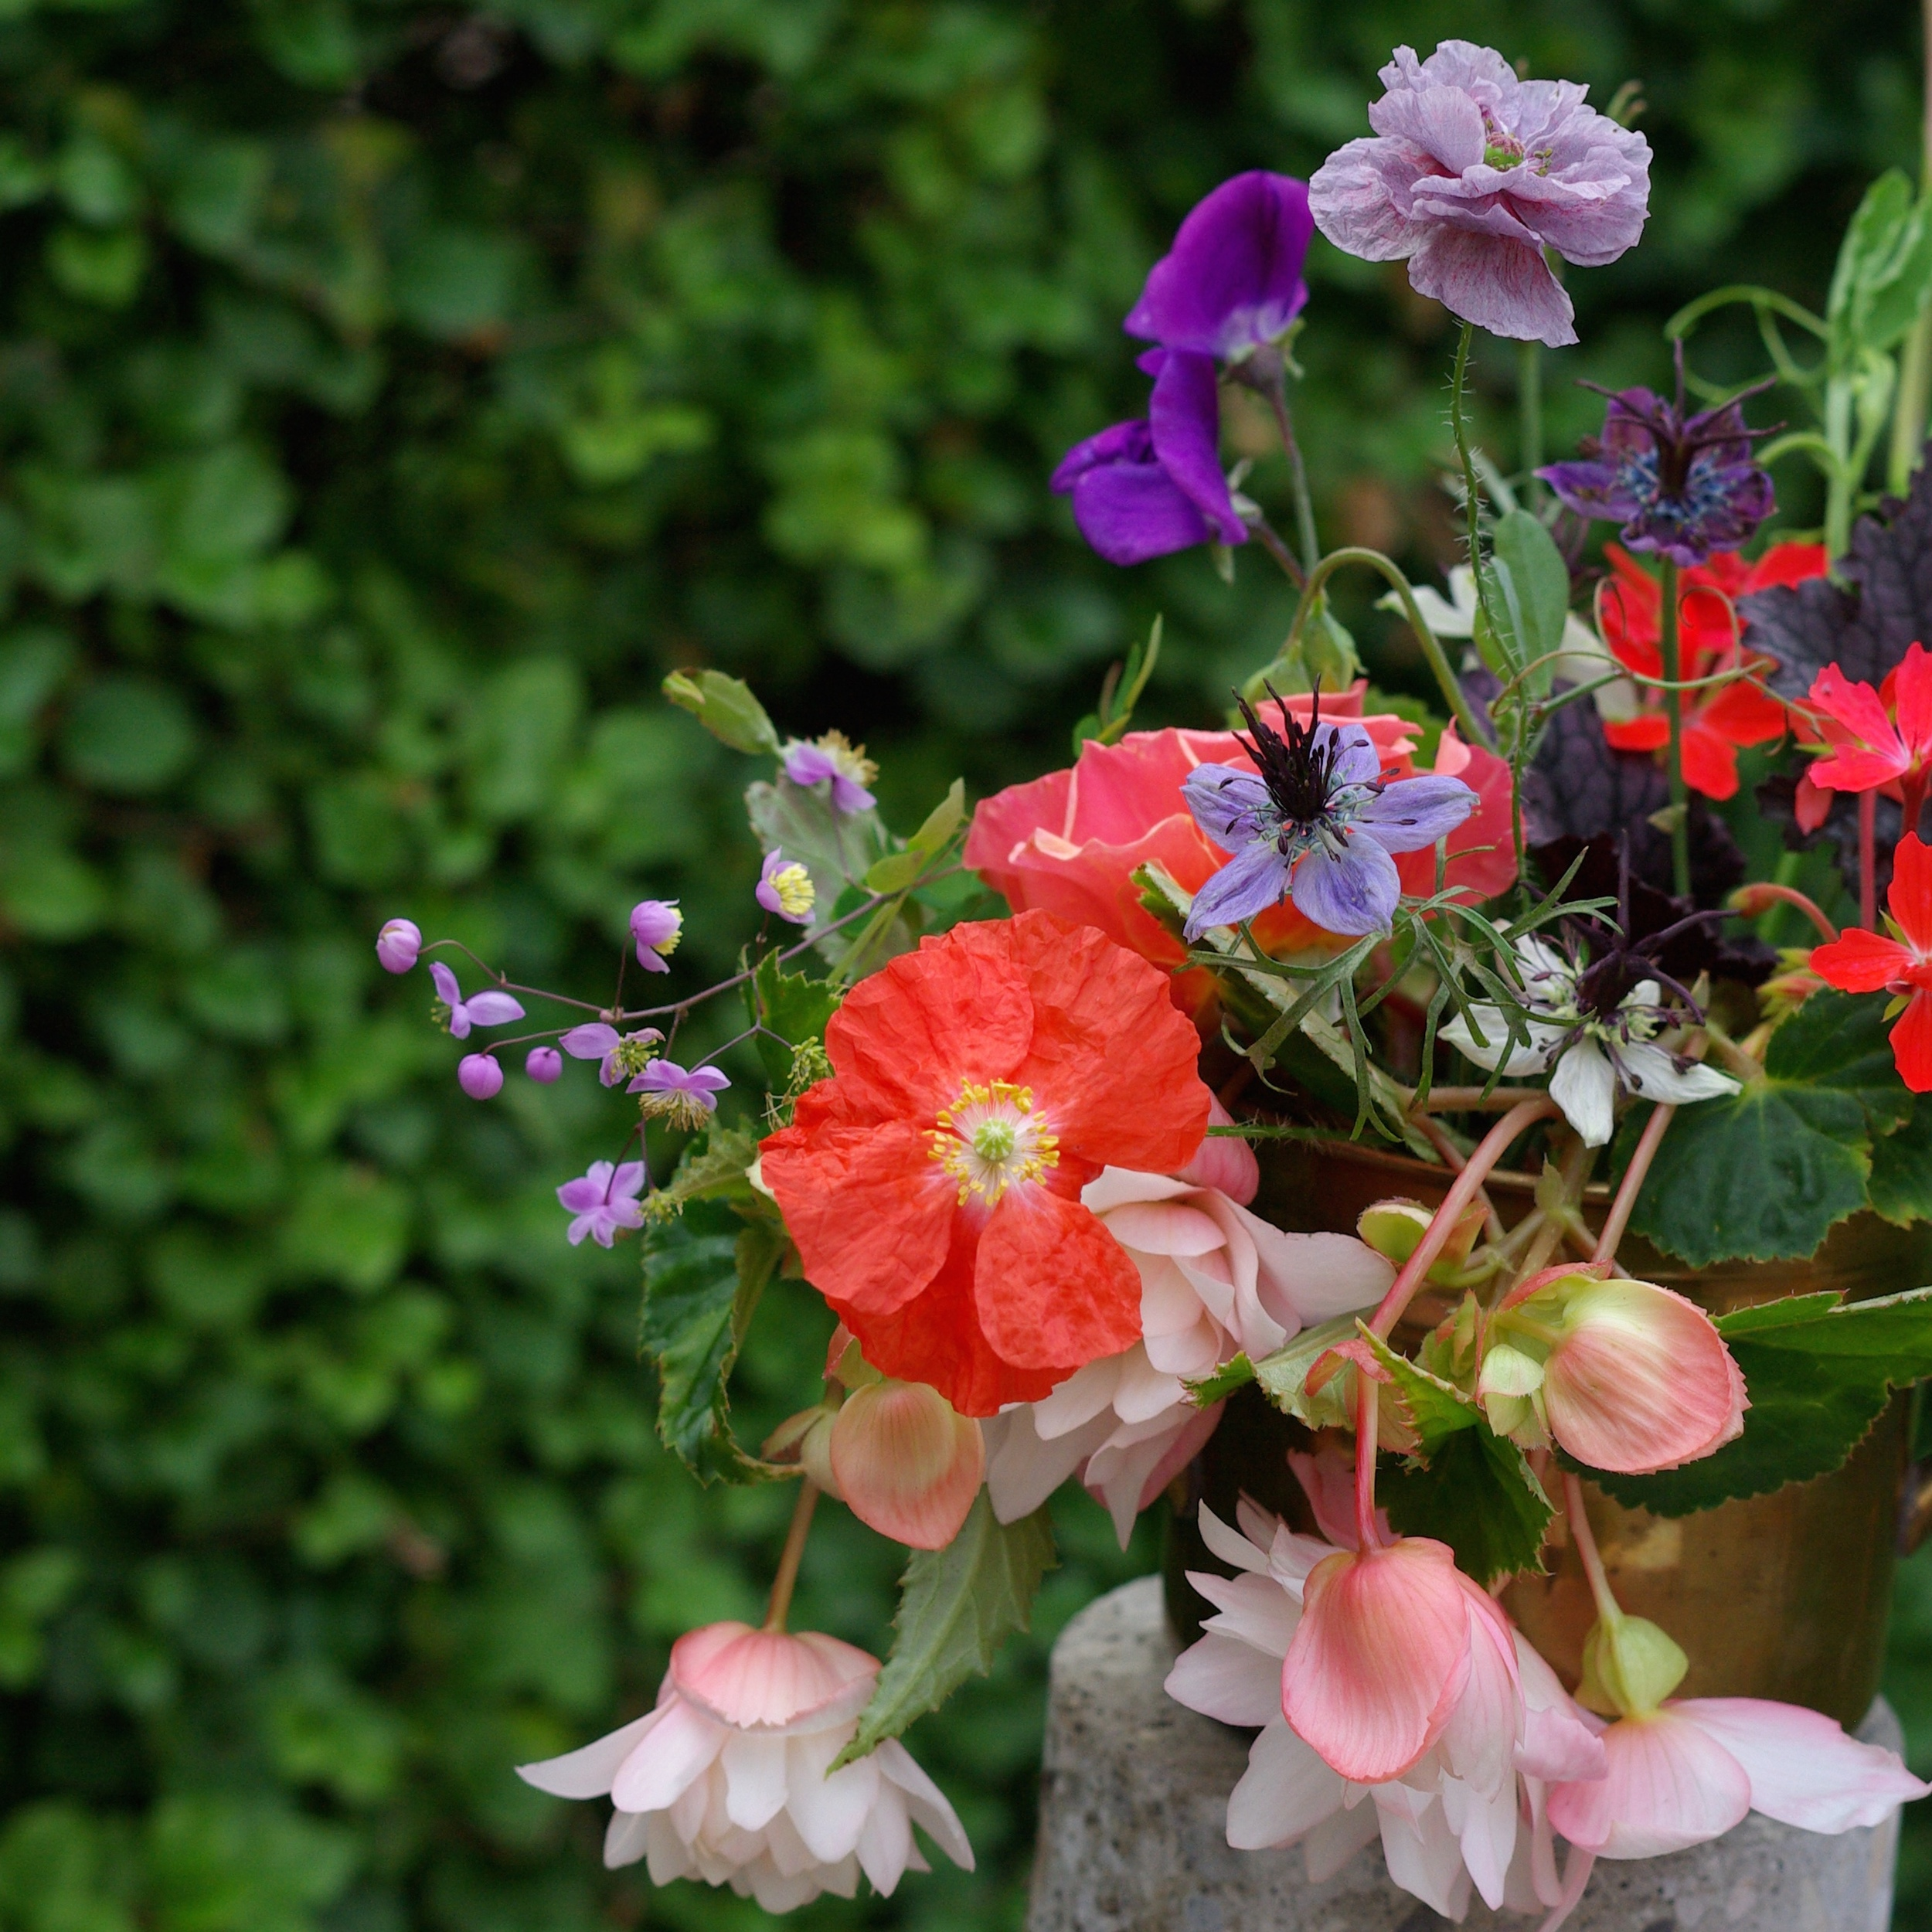 Late August - begonias, poppies, thalictrum, nigella, heuchera, sweet peas, pelargoniums, roses